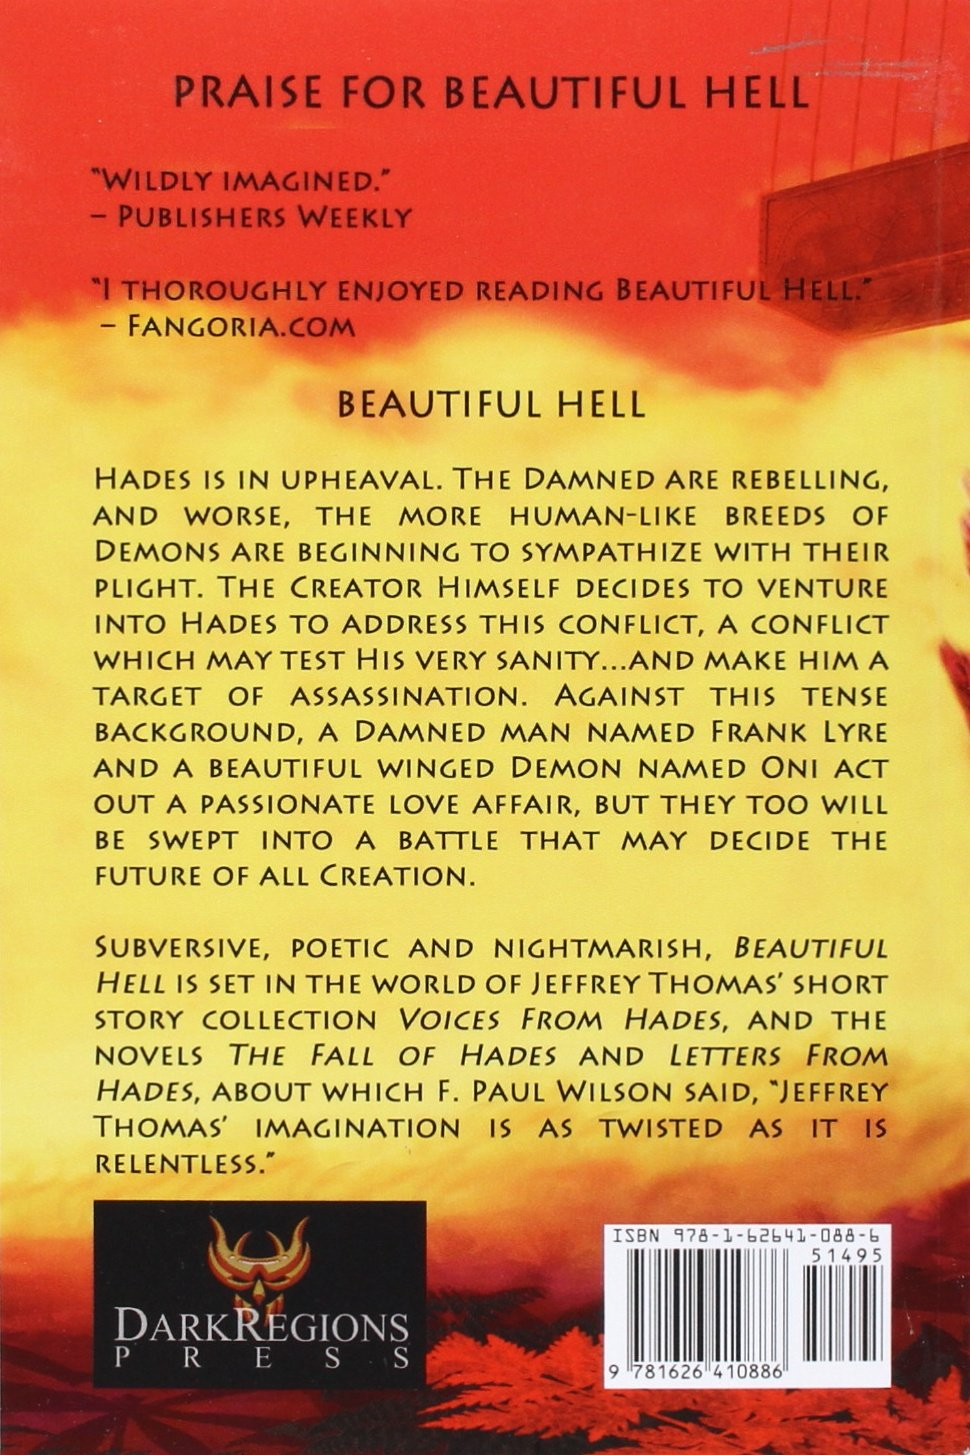 beautiful hell jeffrey thomas 9781626410886 amazon com books